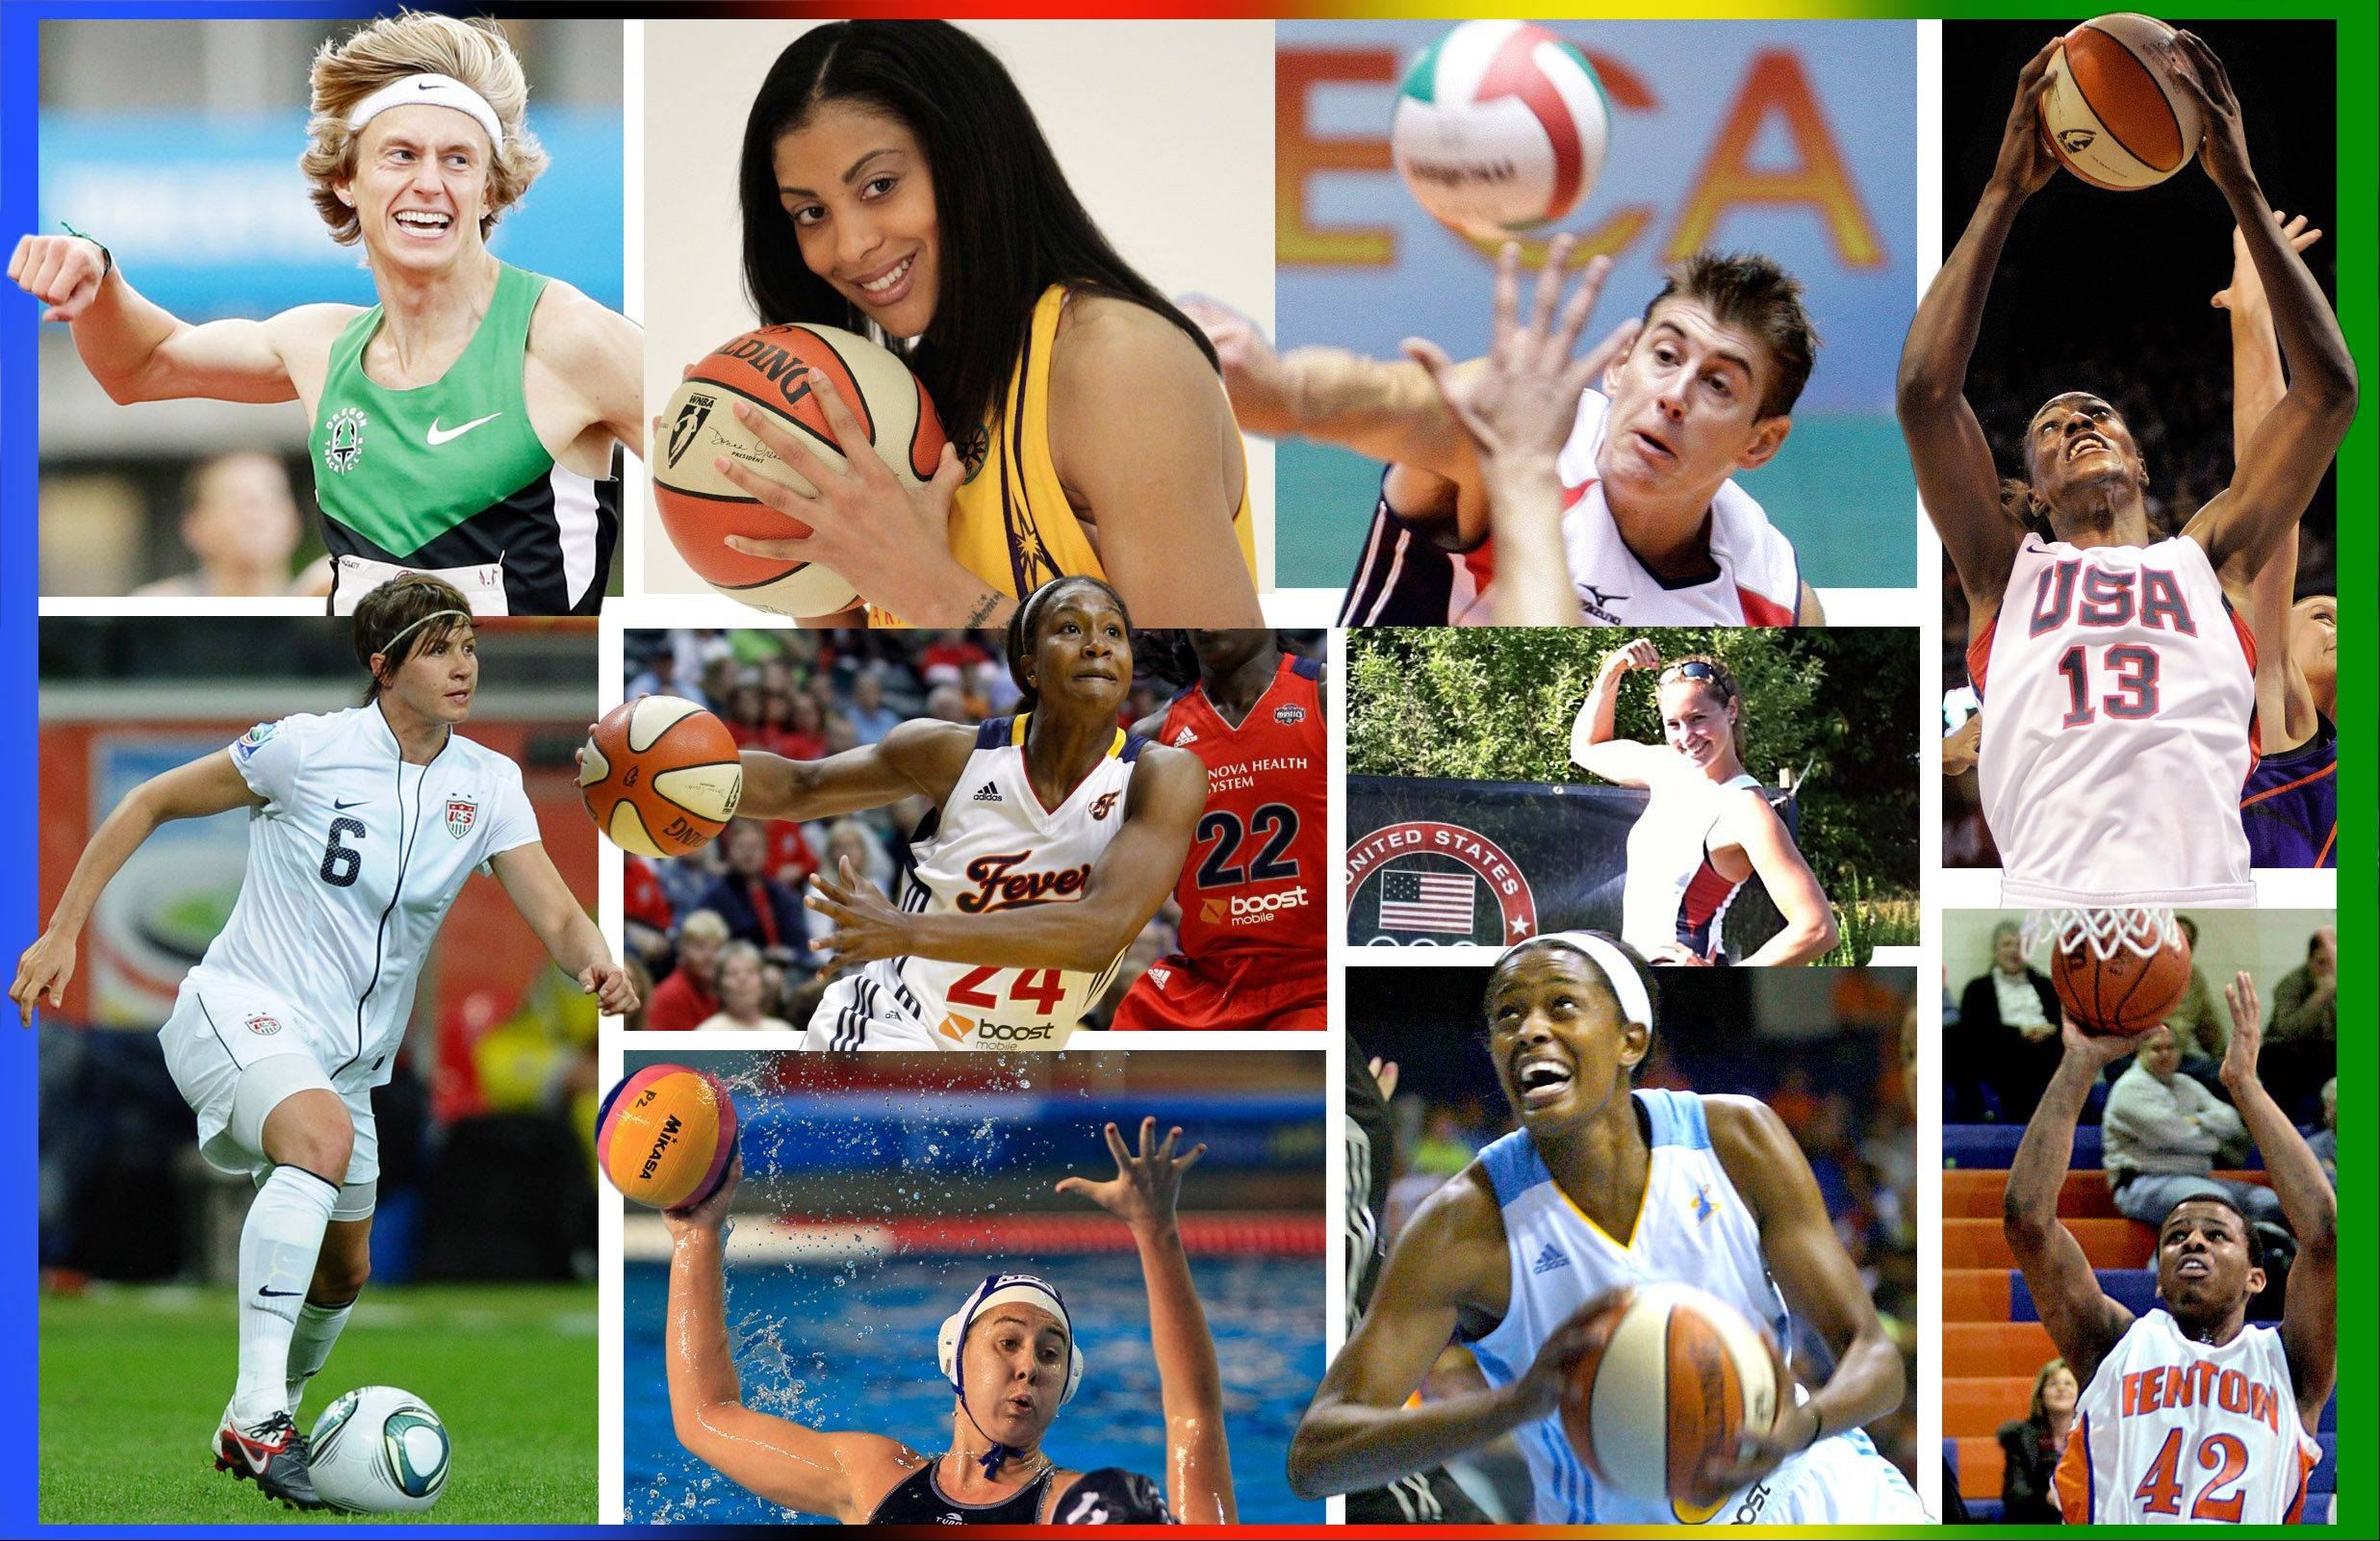 Among the Olympians competing in the 2012 Games in London with ties to the suburbs are (top left to right) Evan Jager in the 3000-meter steeplechase, Candace Parker in basketball, Sean Rooney in volleyball, and Sylvia Fowles in basketball; (middle left to right) Amy LePeilbet in soccer, Tamika Catchings in basketball, and Sarah Zelenka in rowing; (bottom left to right), Melissa Seidemann in water polo, Swin Cash in basketball, and Richard Oruche in basketball. Oruche is on team Nigeria, while the others represent team USA.